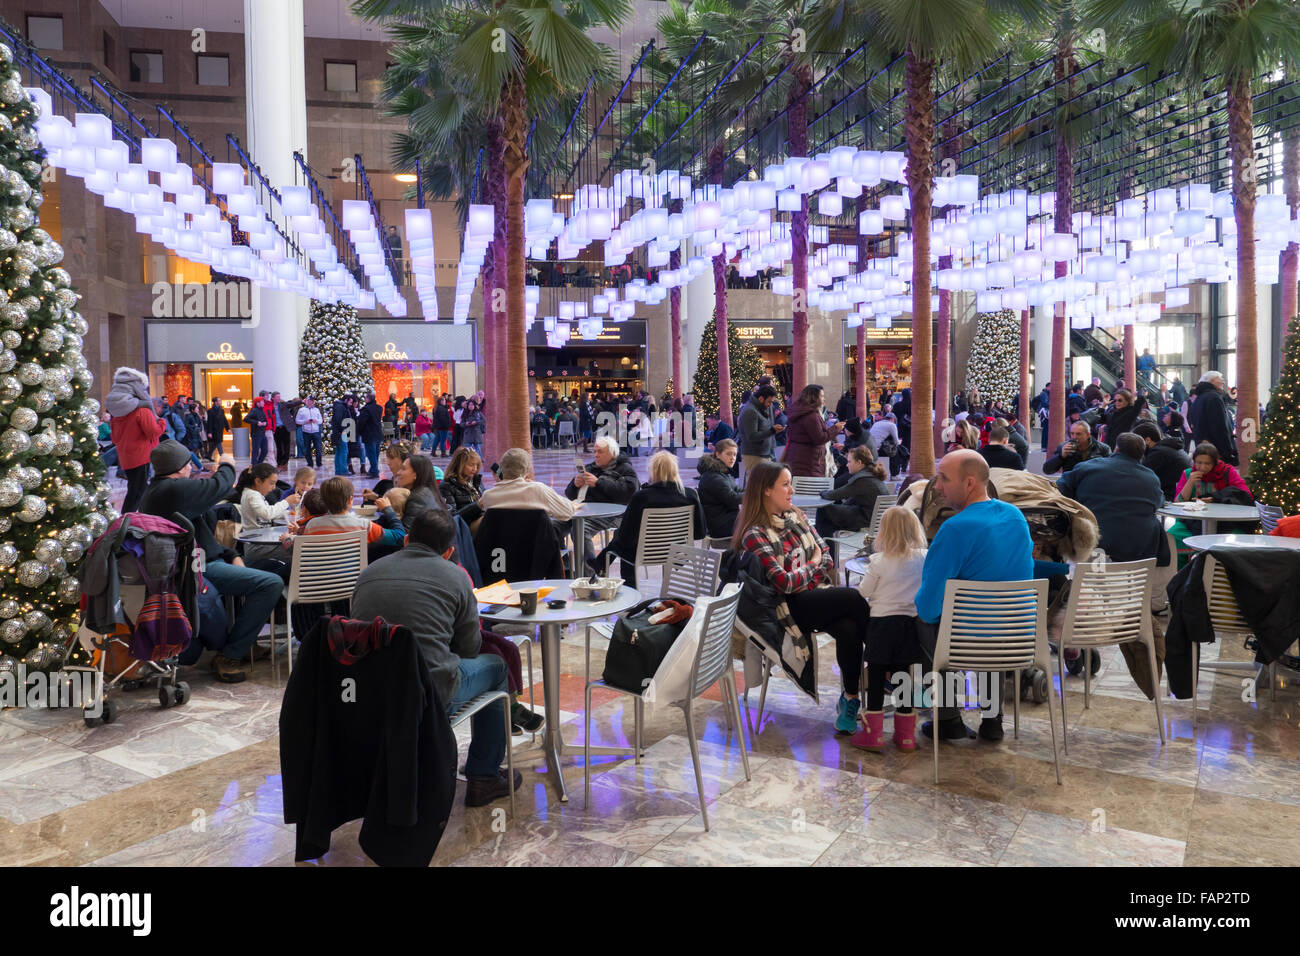 Visitors and shoppers sit under hanging lanterns in the atrium of Brookfield Place during the holiday season in - Stock Image